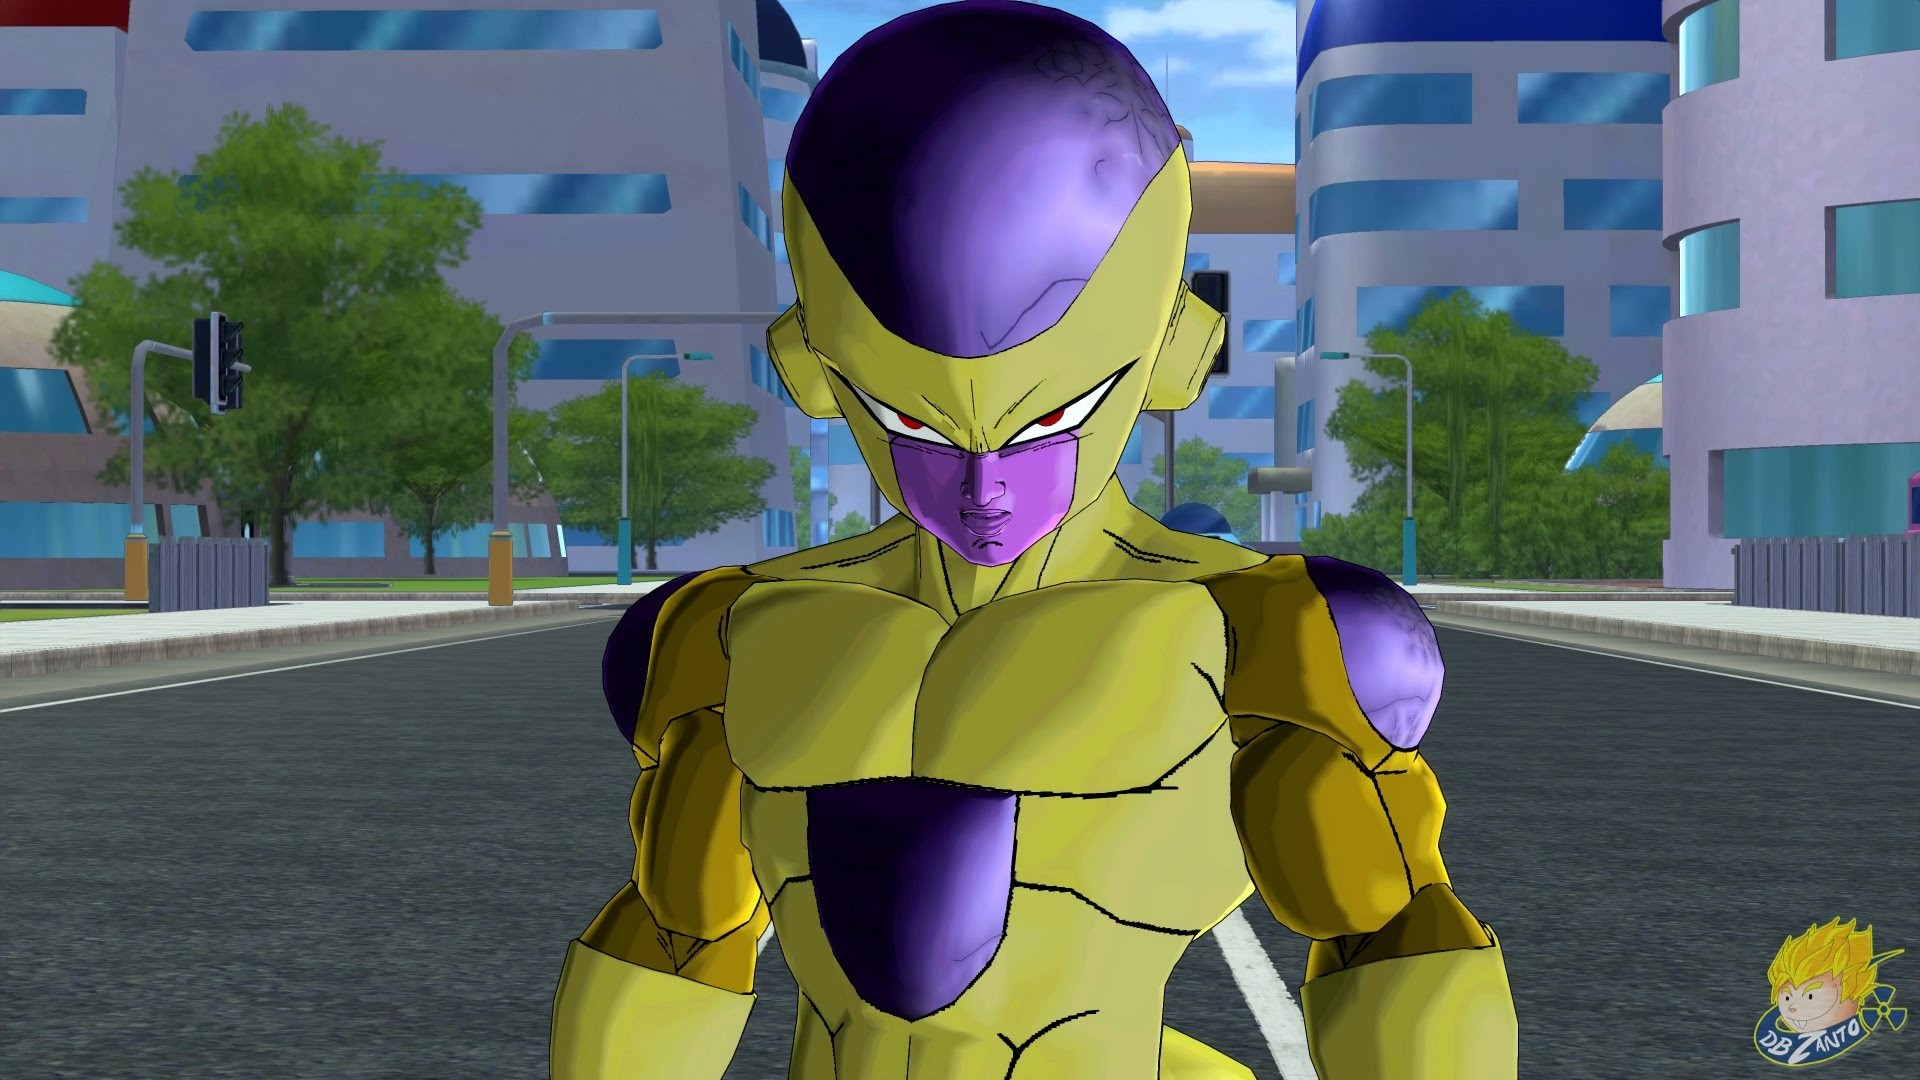 Golden Frieza Wallpapers (65+ images)